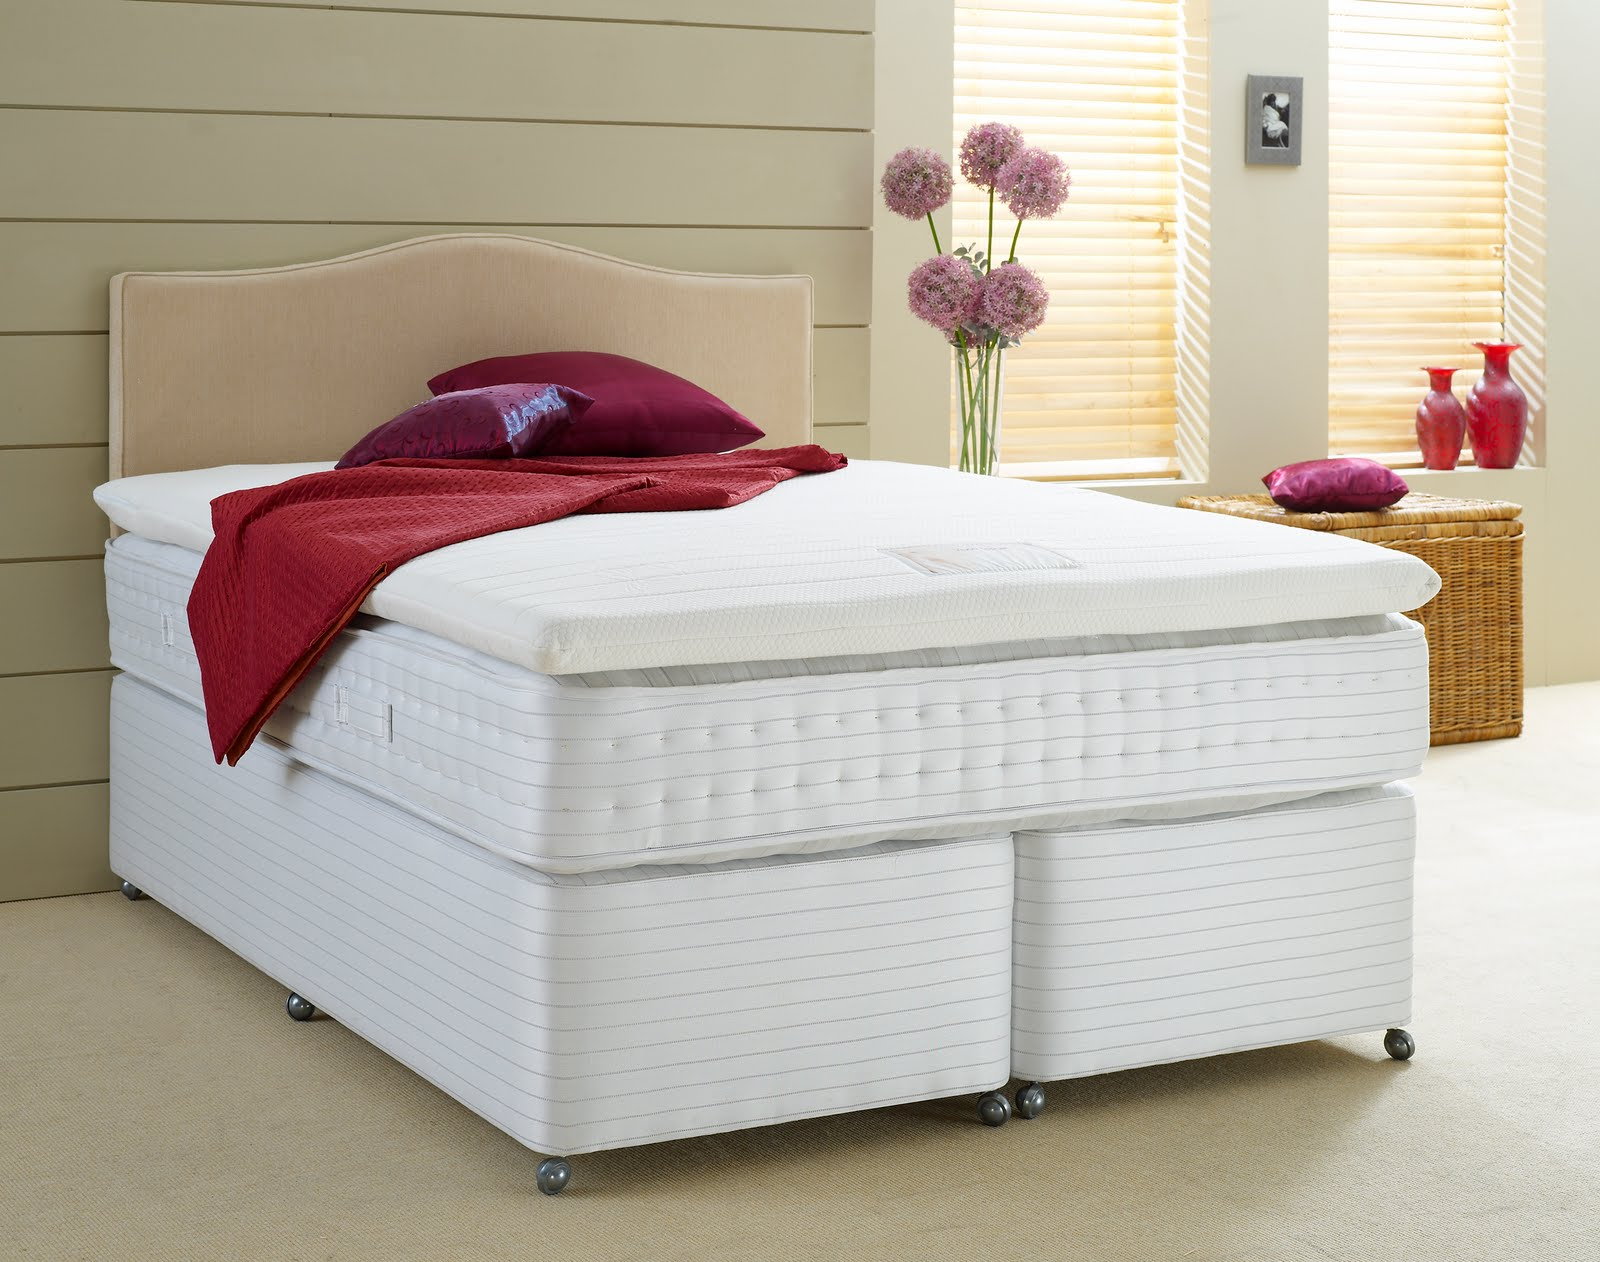 Bedroom Mattress 11 Steps To Choosing The Right Mattresses